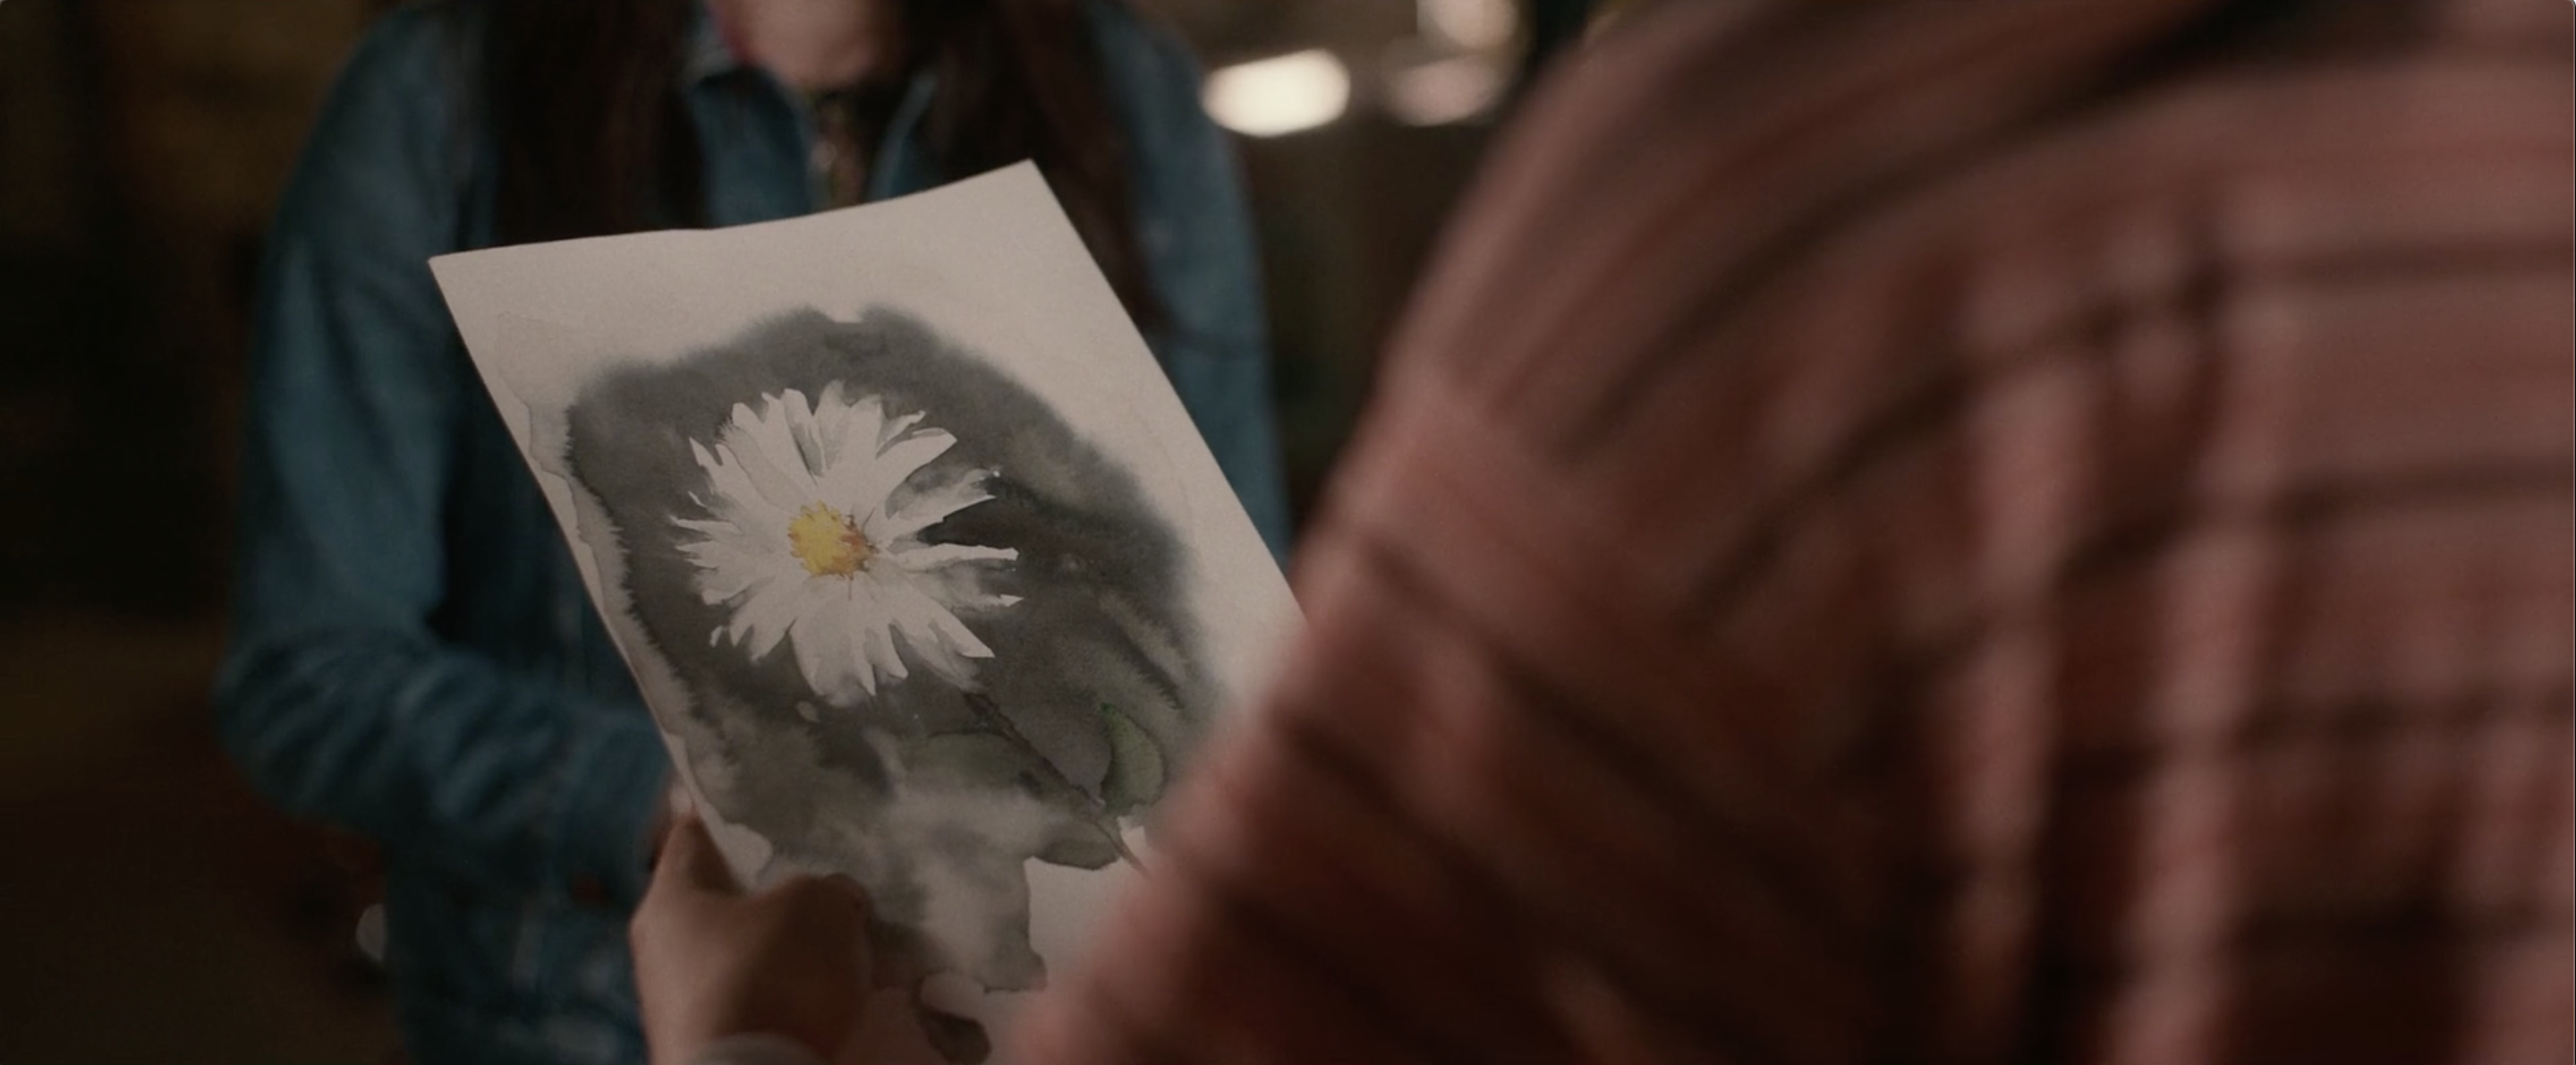 Ellie looks at Aster's painting in The Half of It